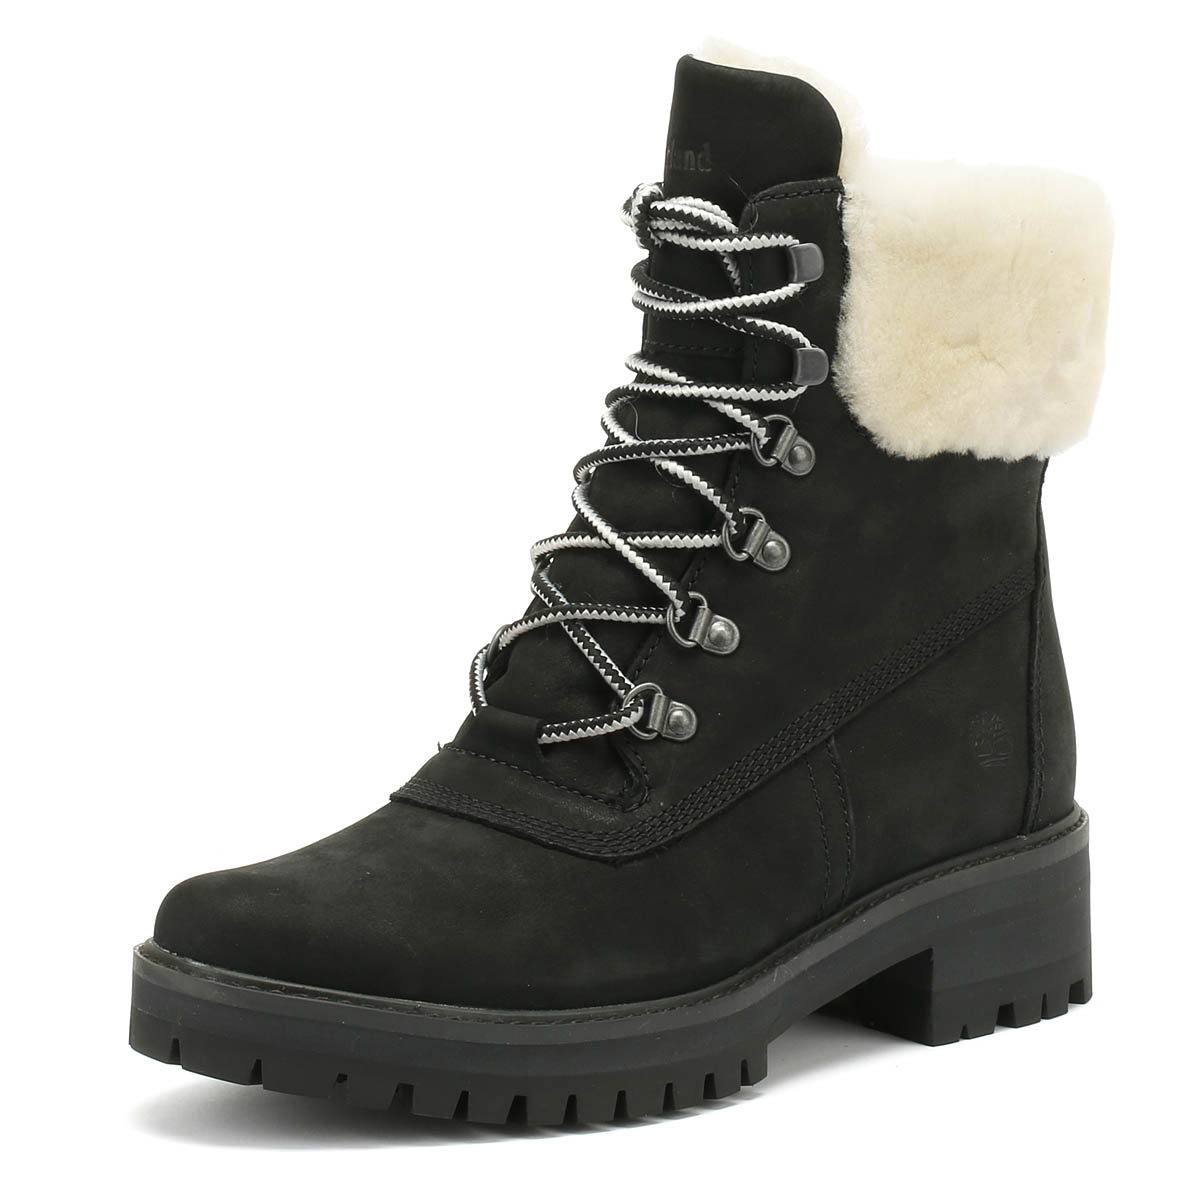 c4a1b8b95dab0 Details about Timberland Courmayeur Valley Womens Boots Shearling Black  Ladies WInter Shoes